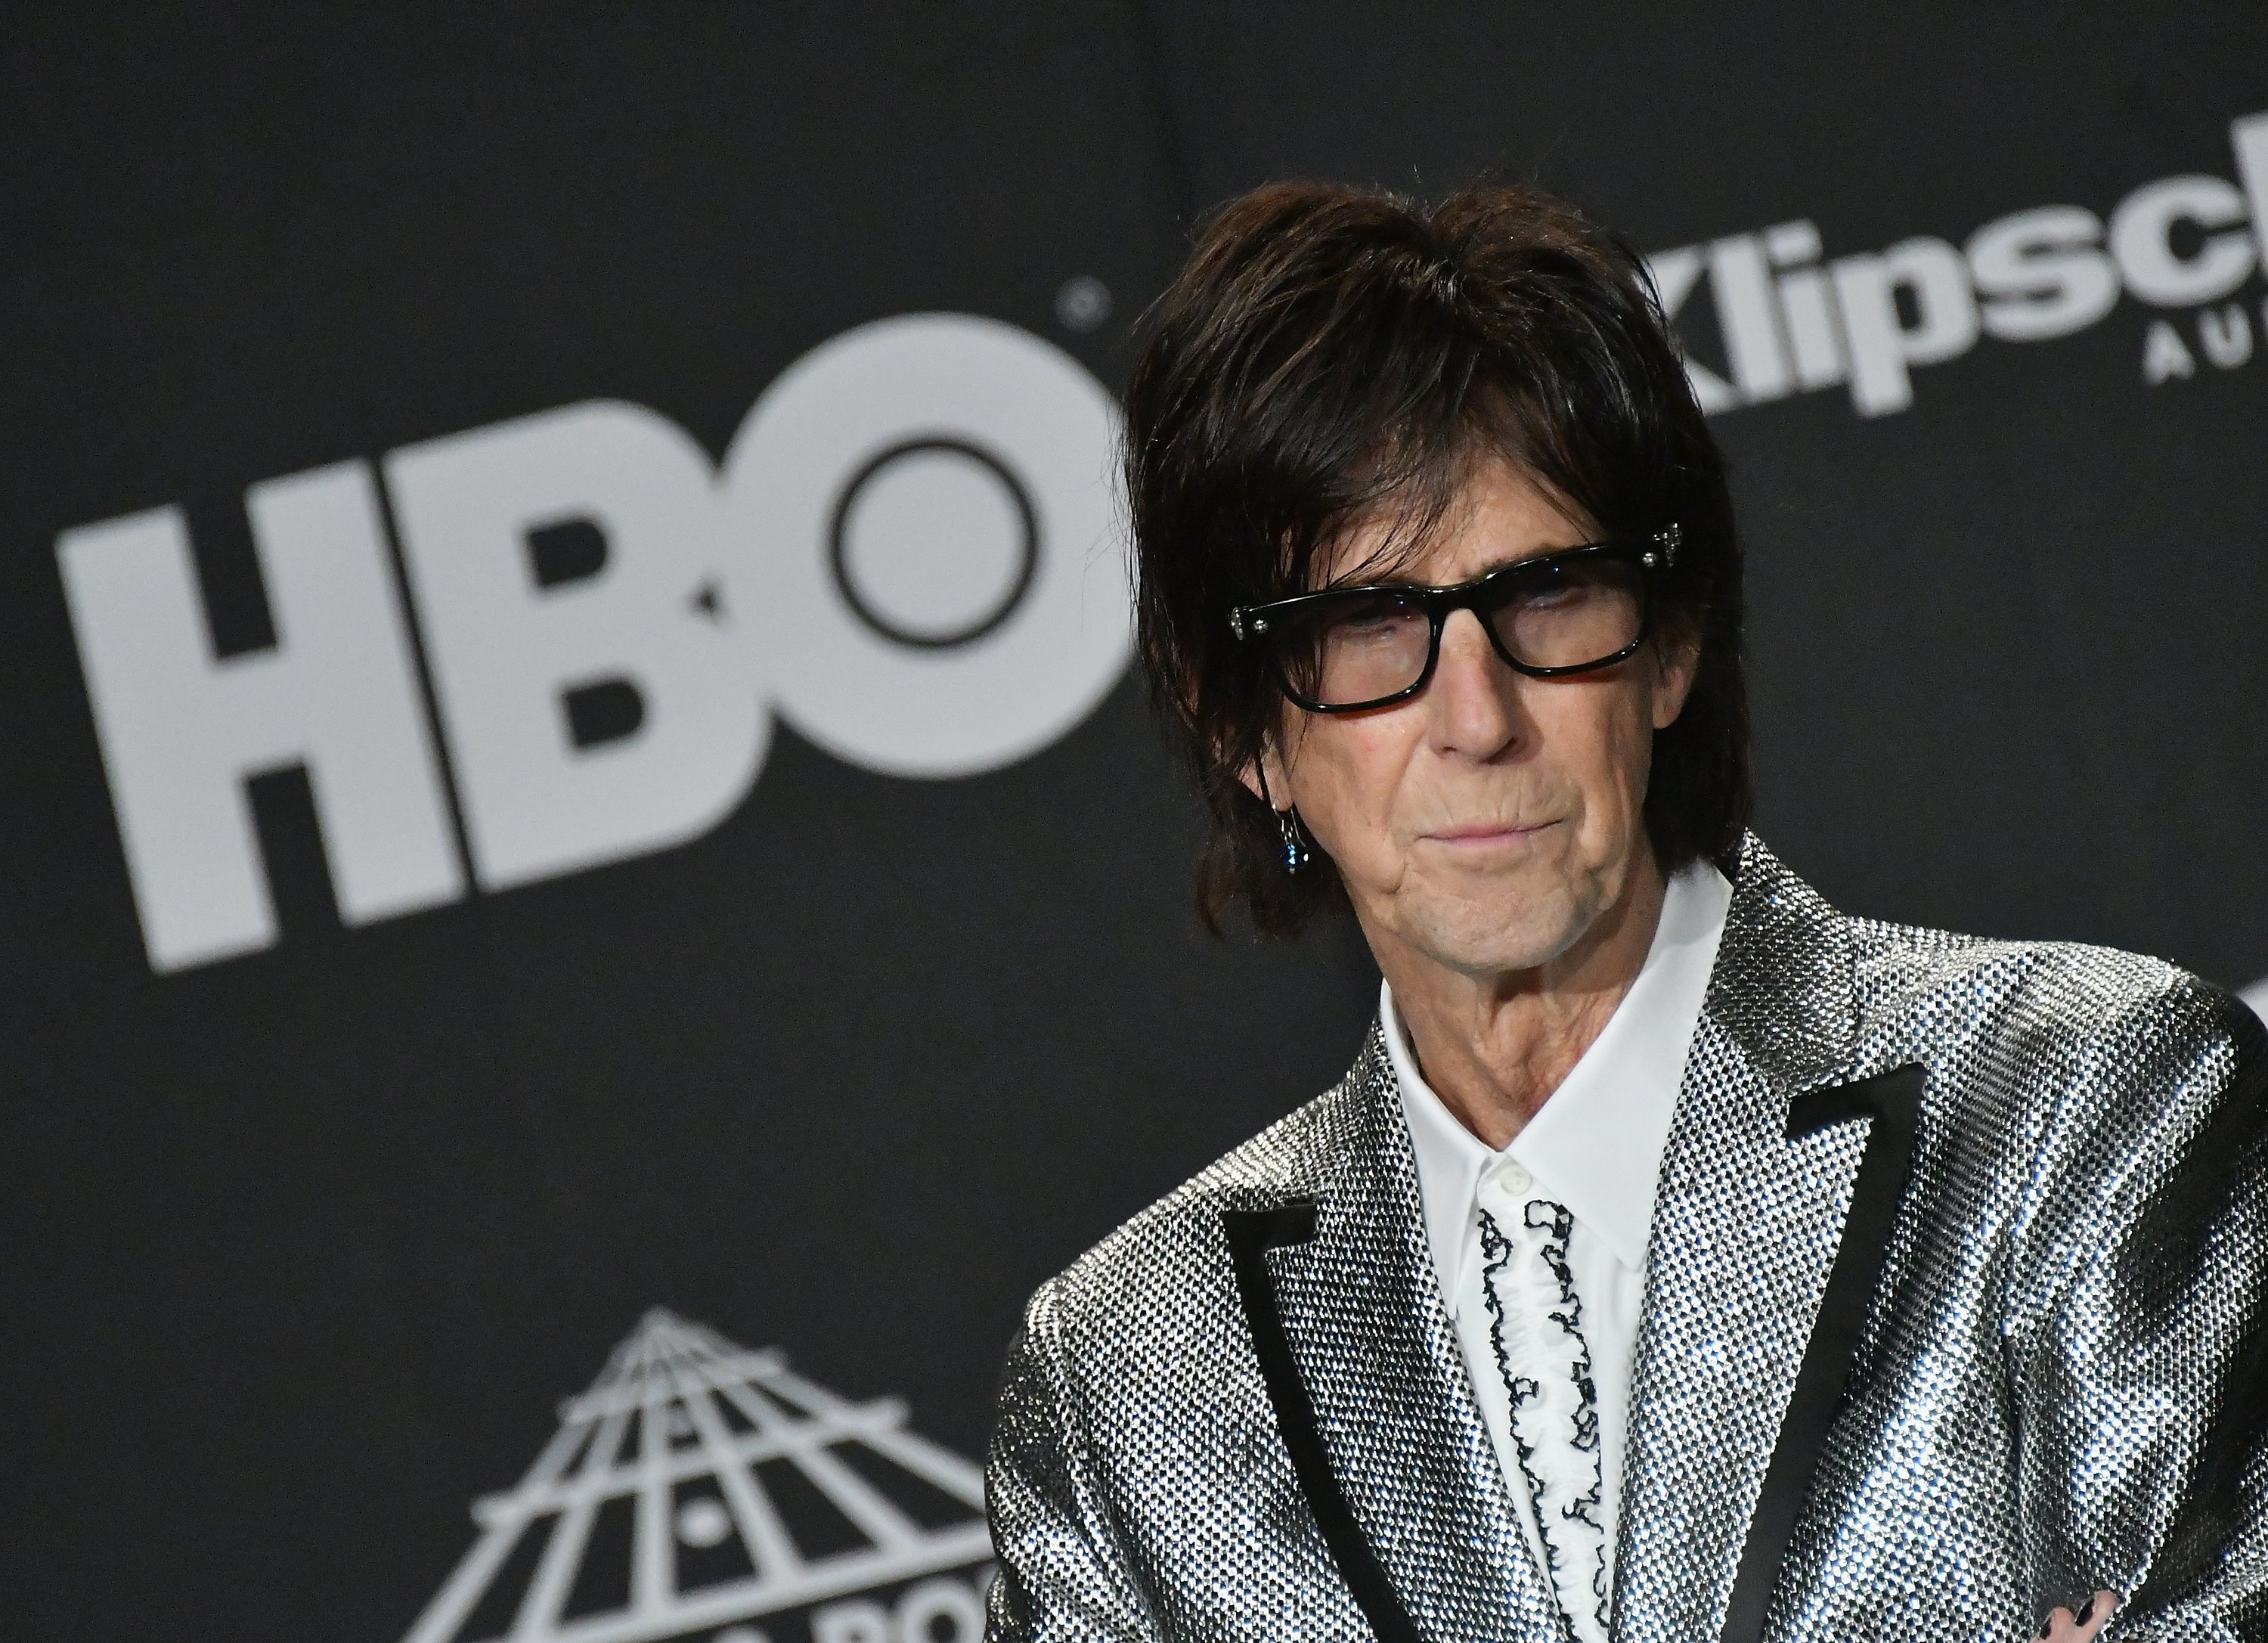 Ric Ocasek attends the Rock & Roll Hall of Fame Induction Ceremony in Cleveland, Ohio on April 14, 2018 | Photo: Getty Images